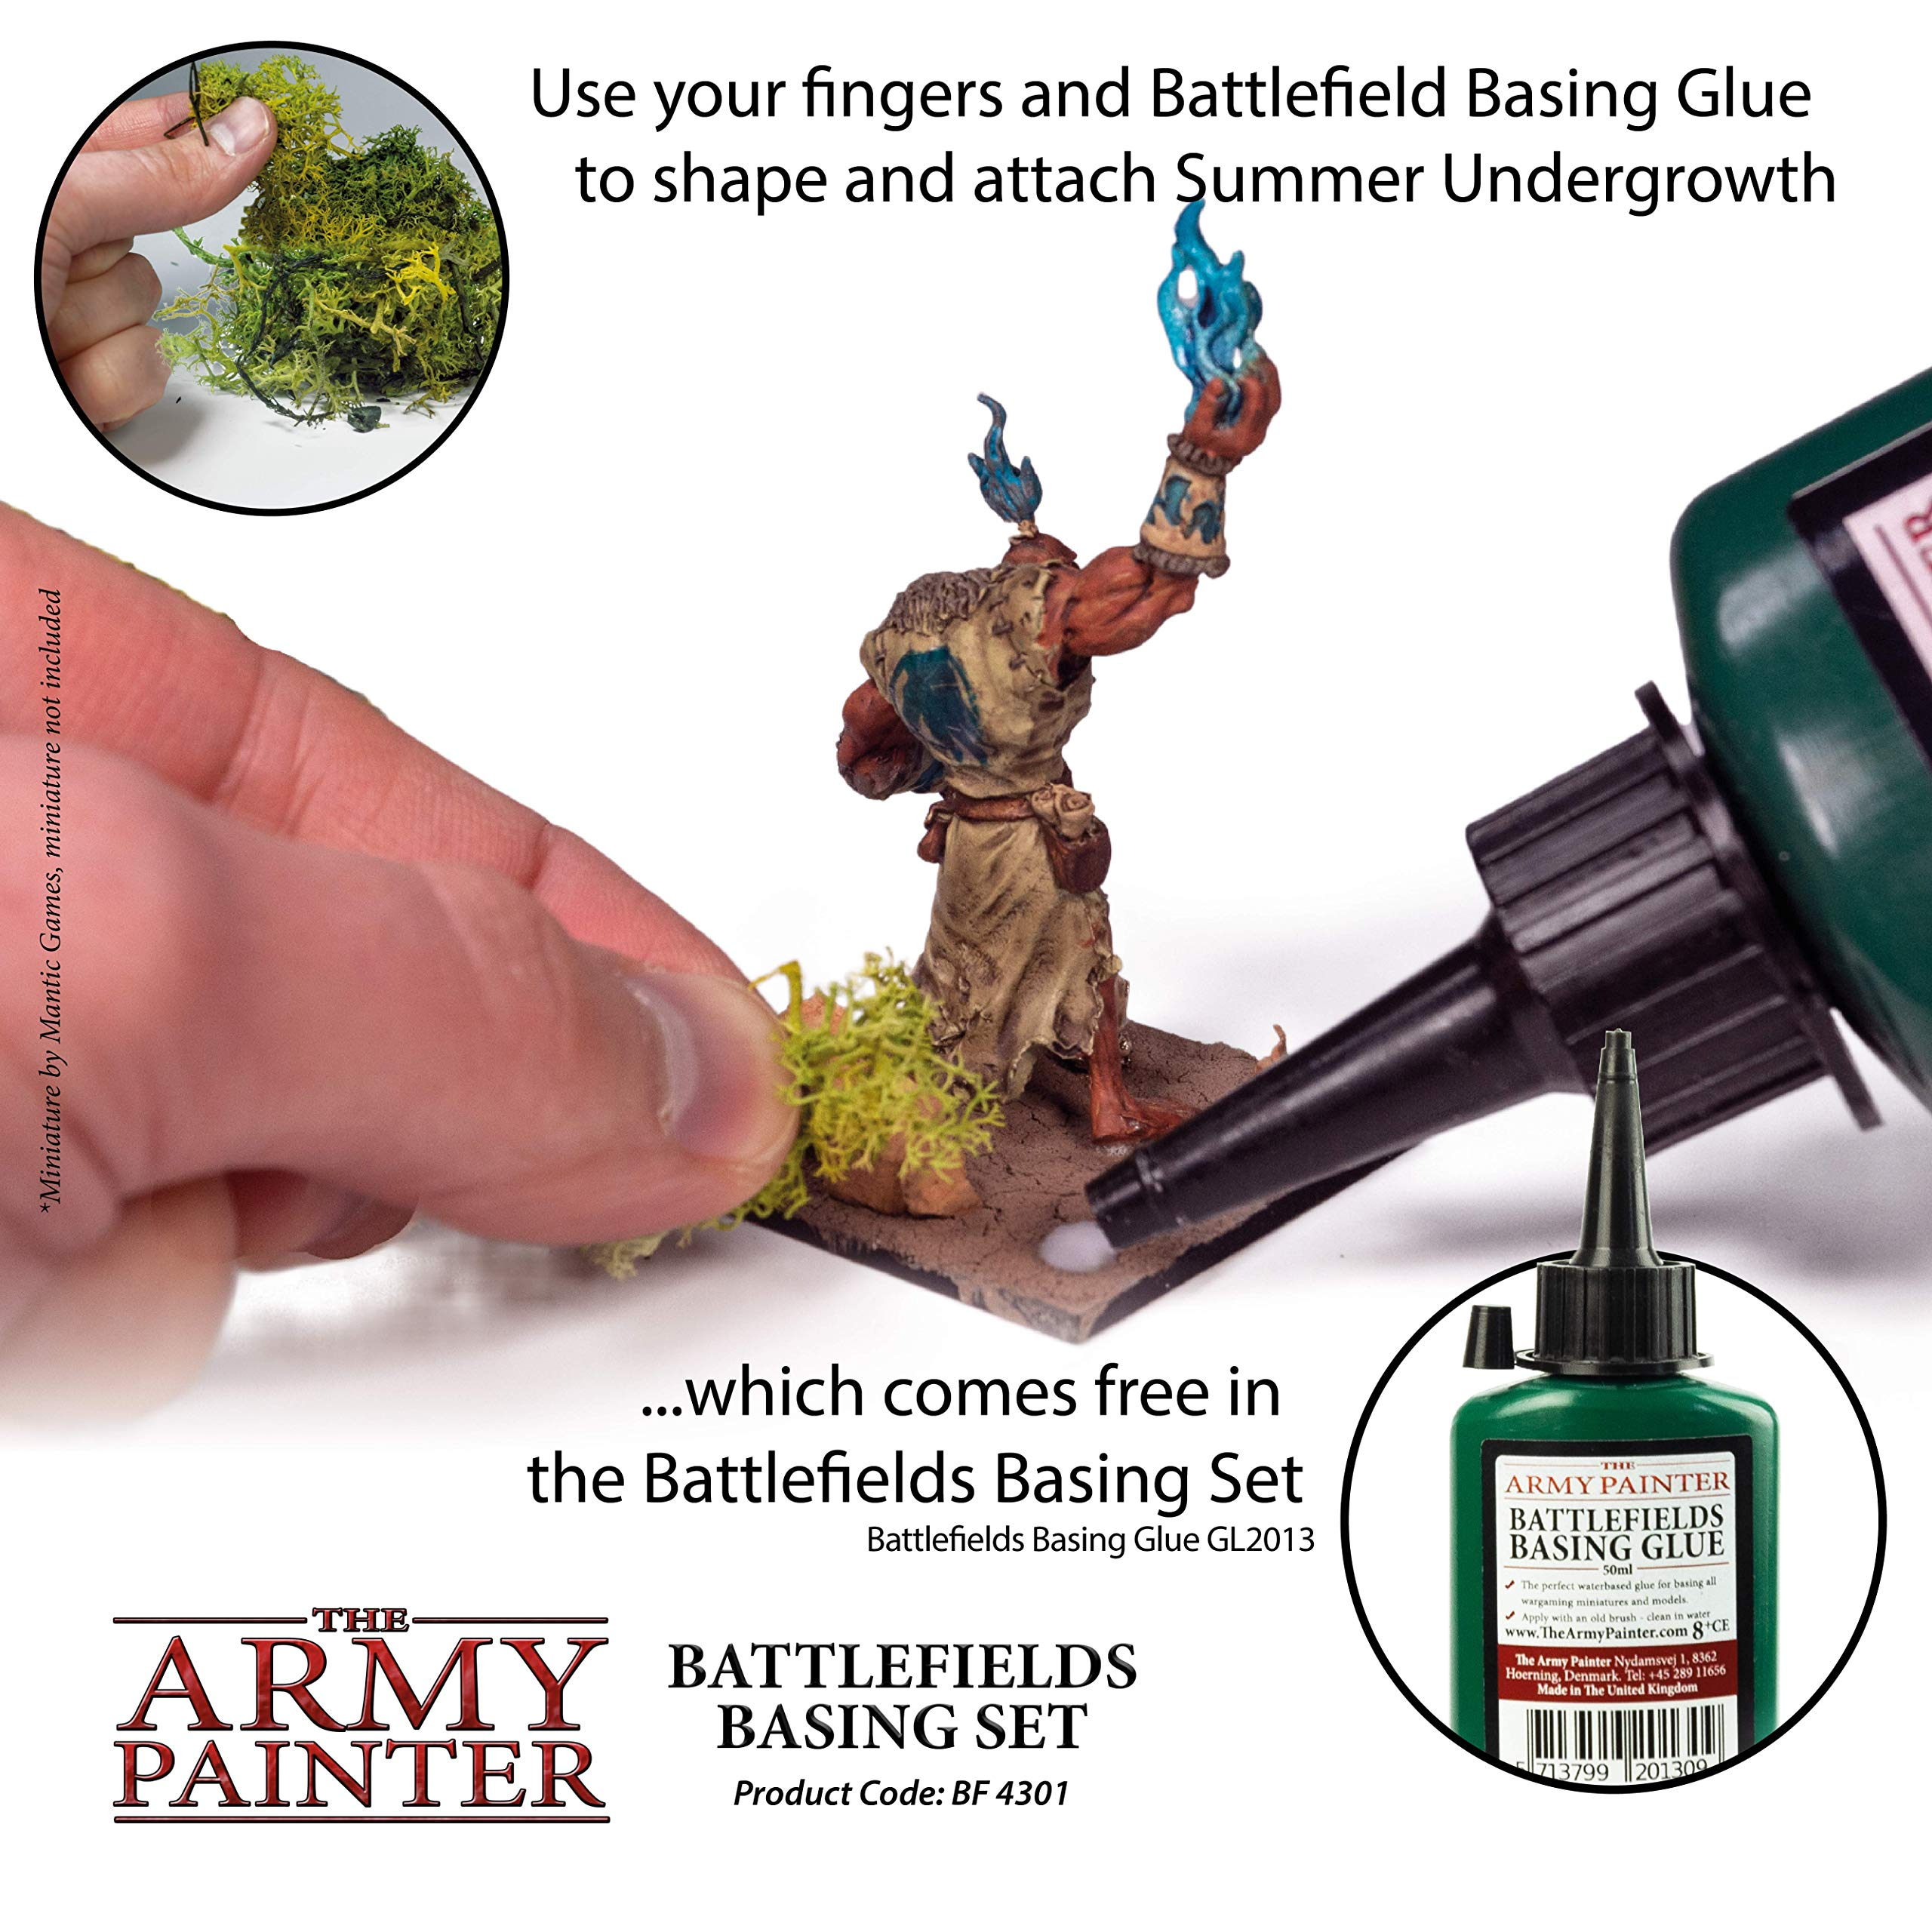 The Army Painter Battlefields Basing Set - Wargamers Terrain Model Kit for Miniature Bases and Dioramas with Landscape Rocks, Scenic Sand, Static Grass, Grass Tufts and Free Basing Glue by The Army Painter (Image #7)